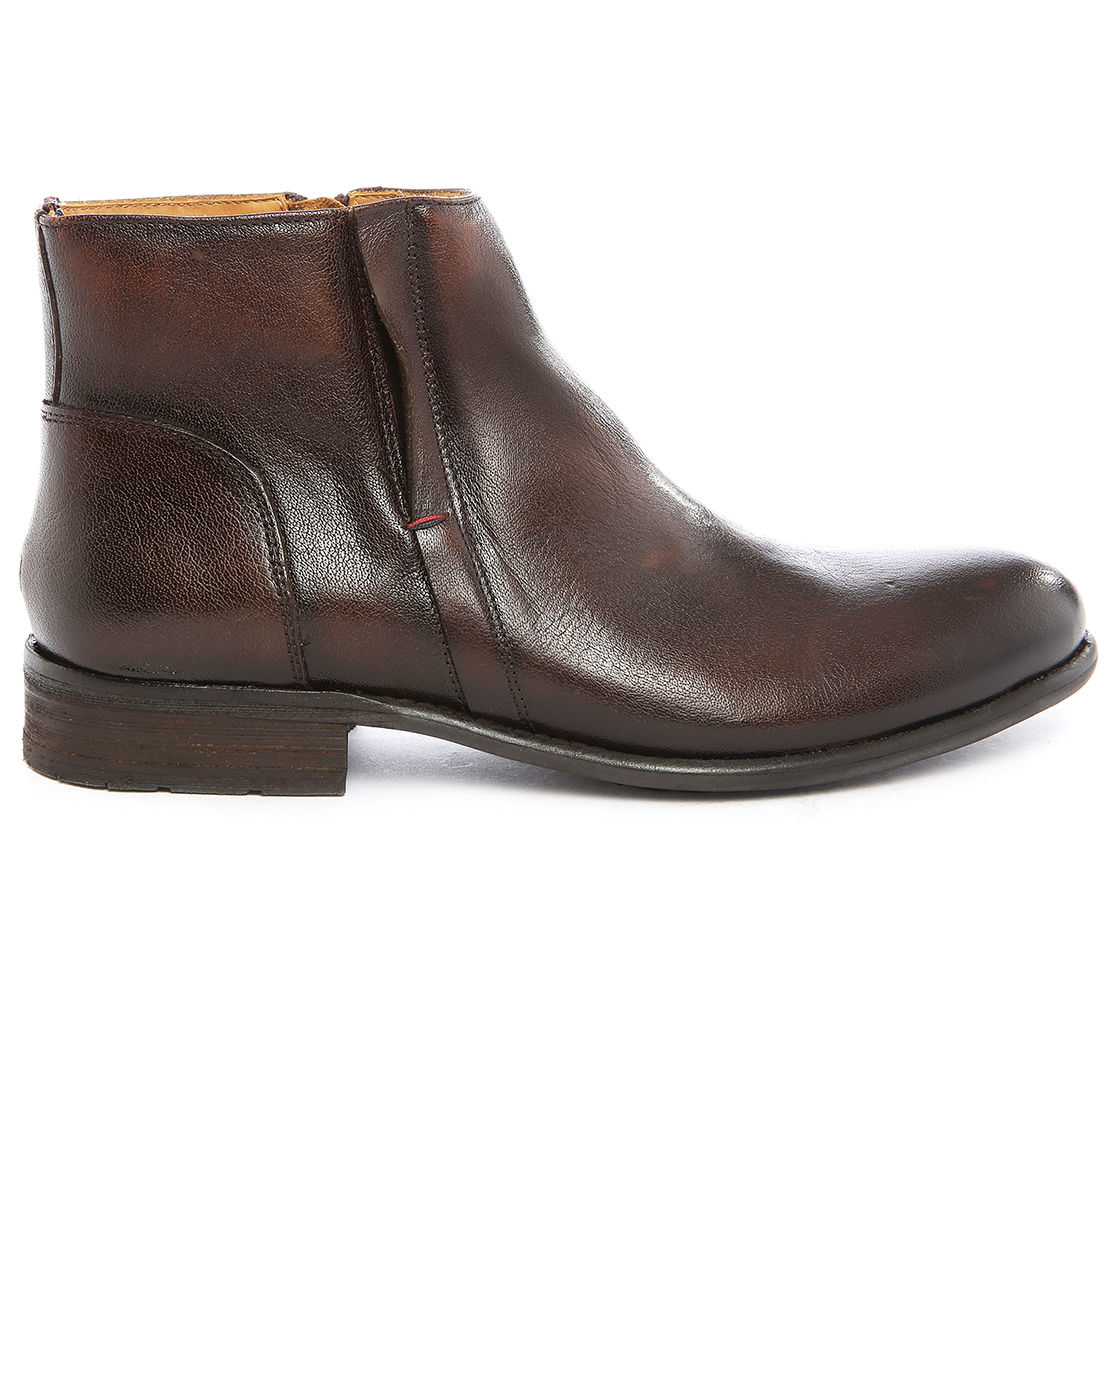 tommy hilfiger damon 3a leather ankle boots in brown for. Black Bedroom Furniture Sets. Home Design Ideas